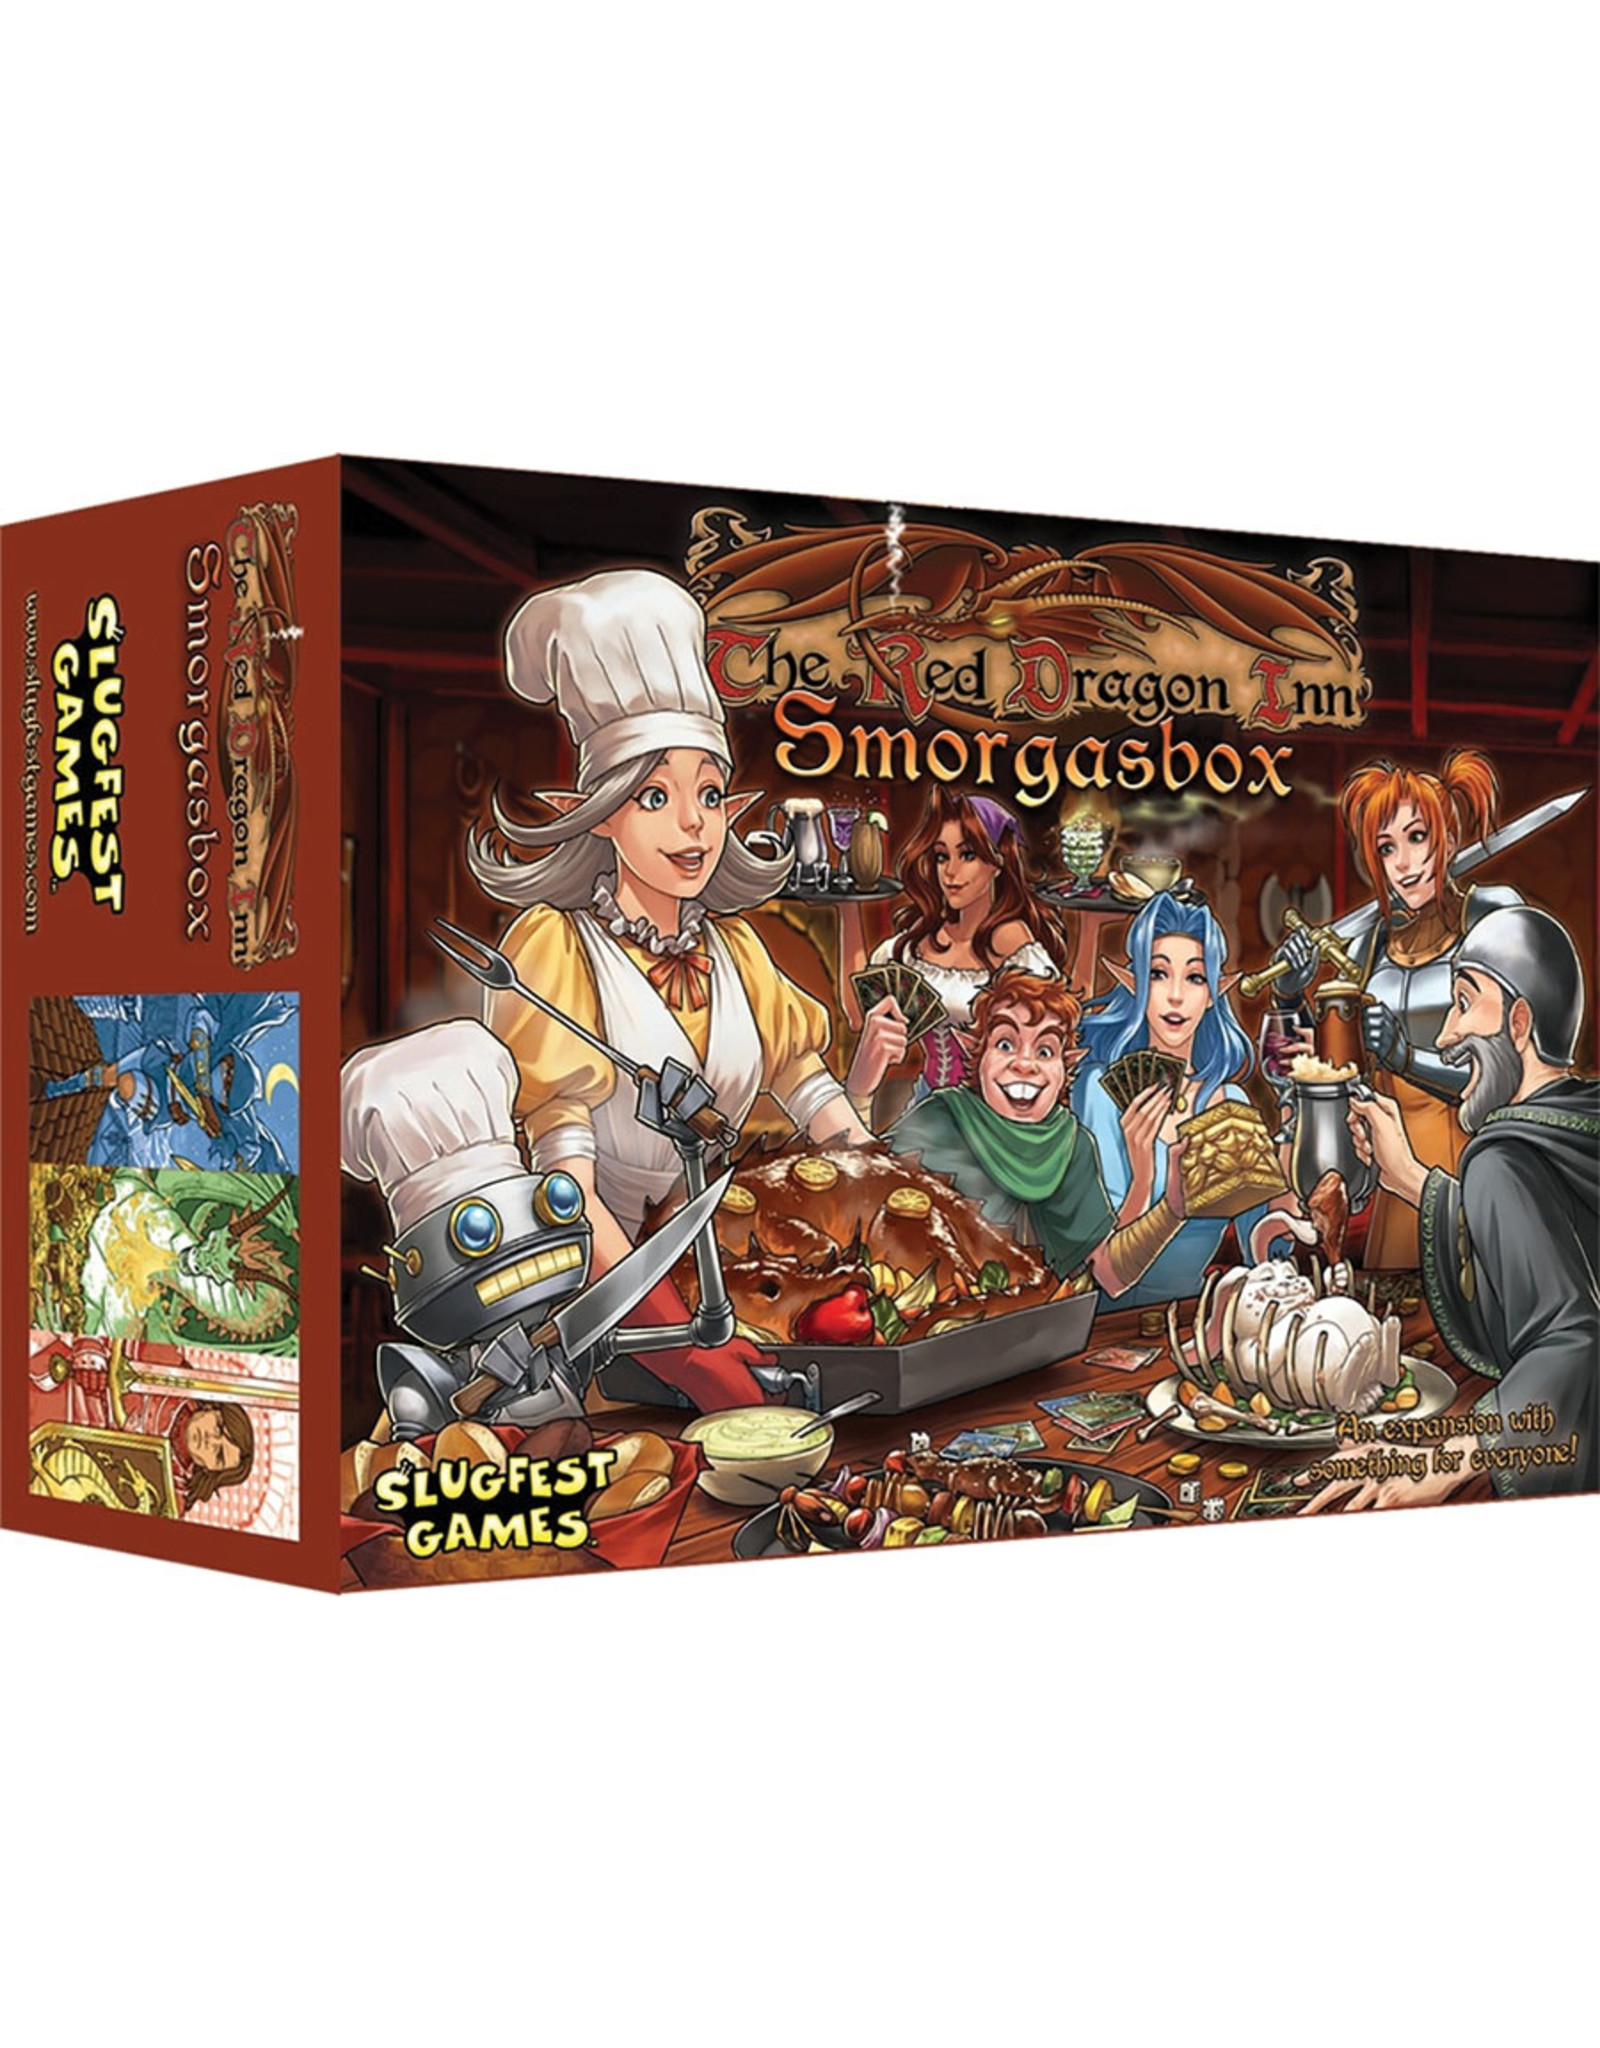 Slugfest Games Red Dragon Inn: Smorgasbox